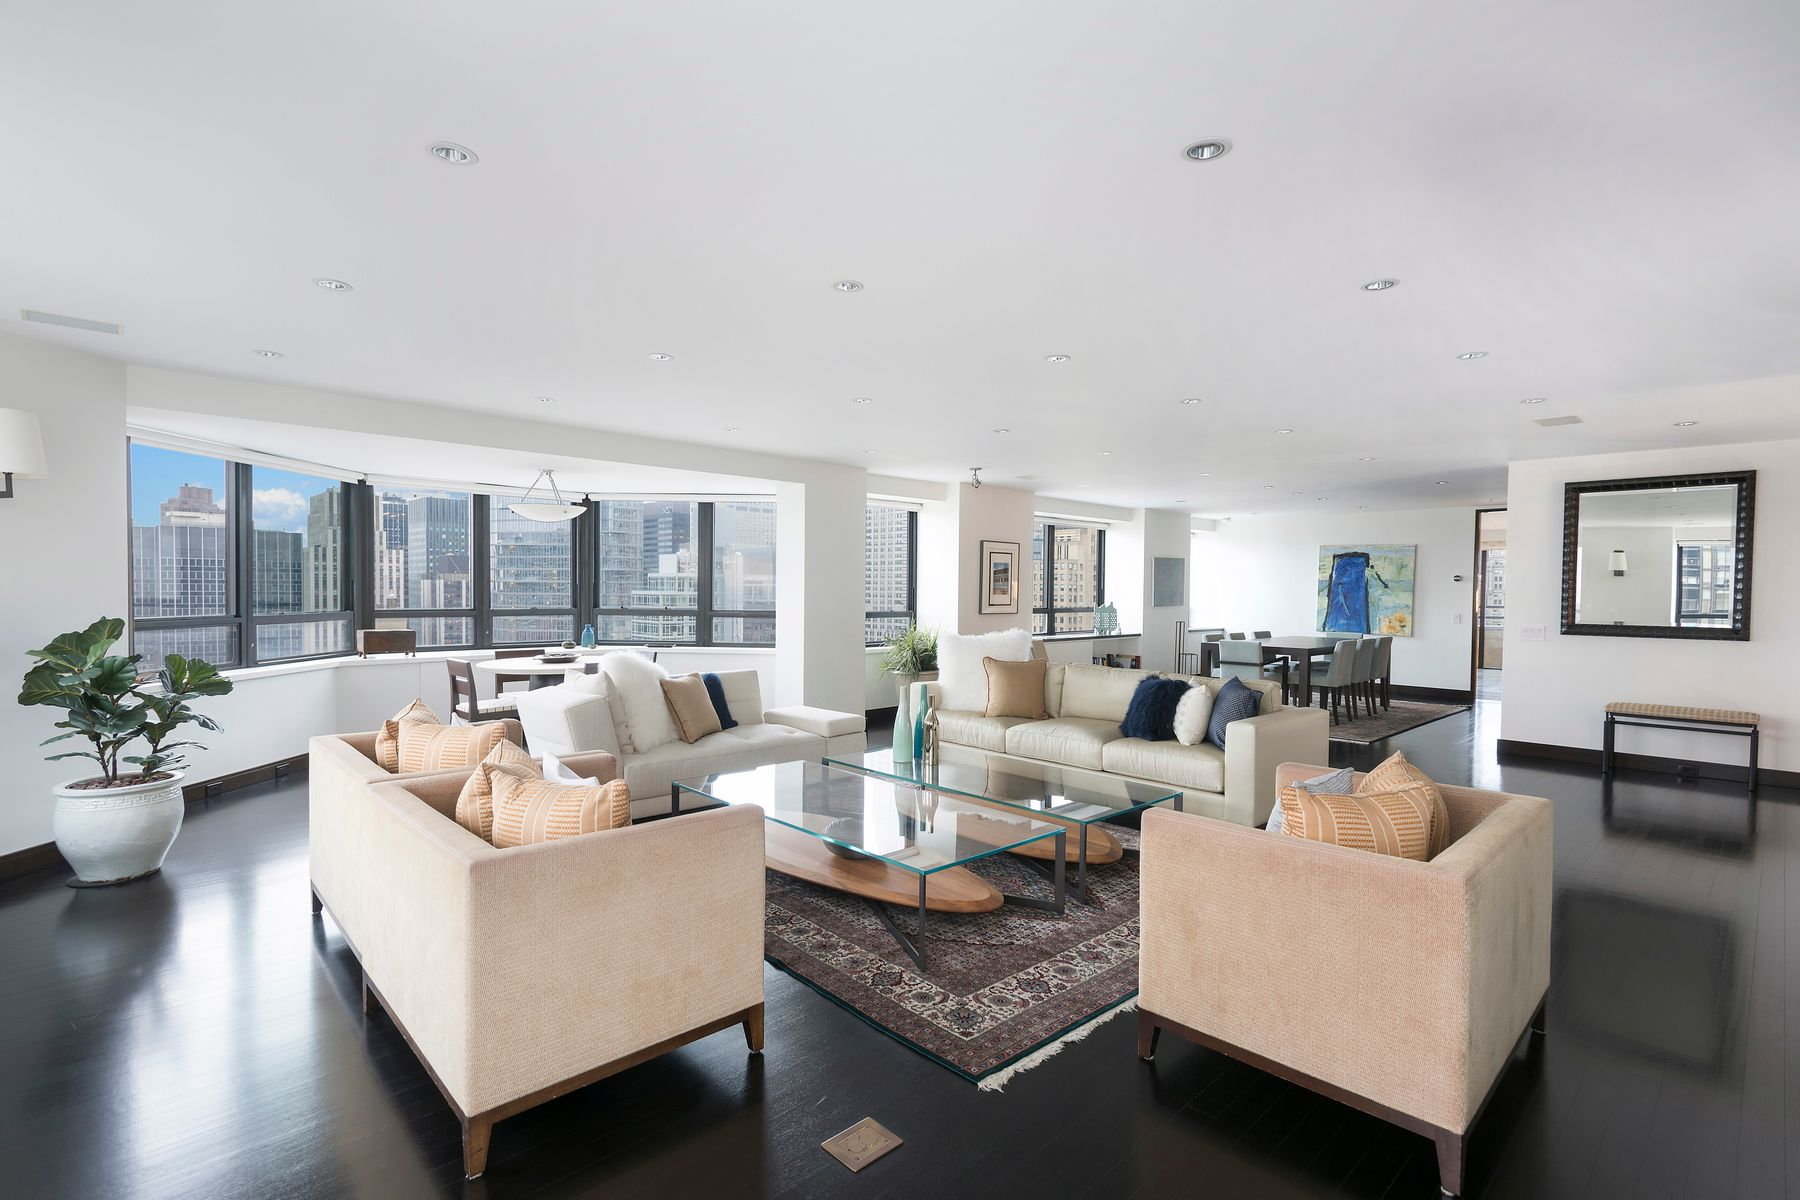 Condominiums for Sale at 240 East 47th Street, 39DEF 240 East 47th Street Apt 39DEF New York, New York 10017 United States